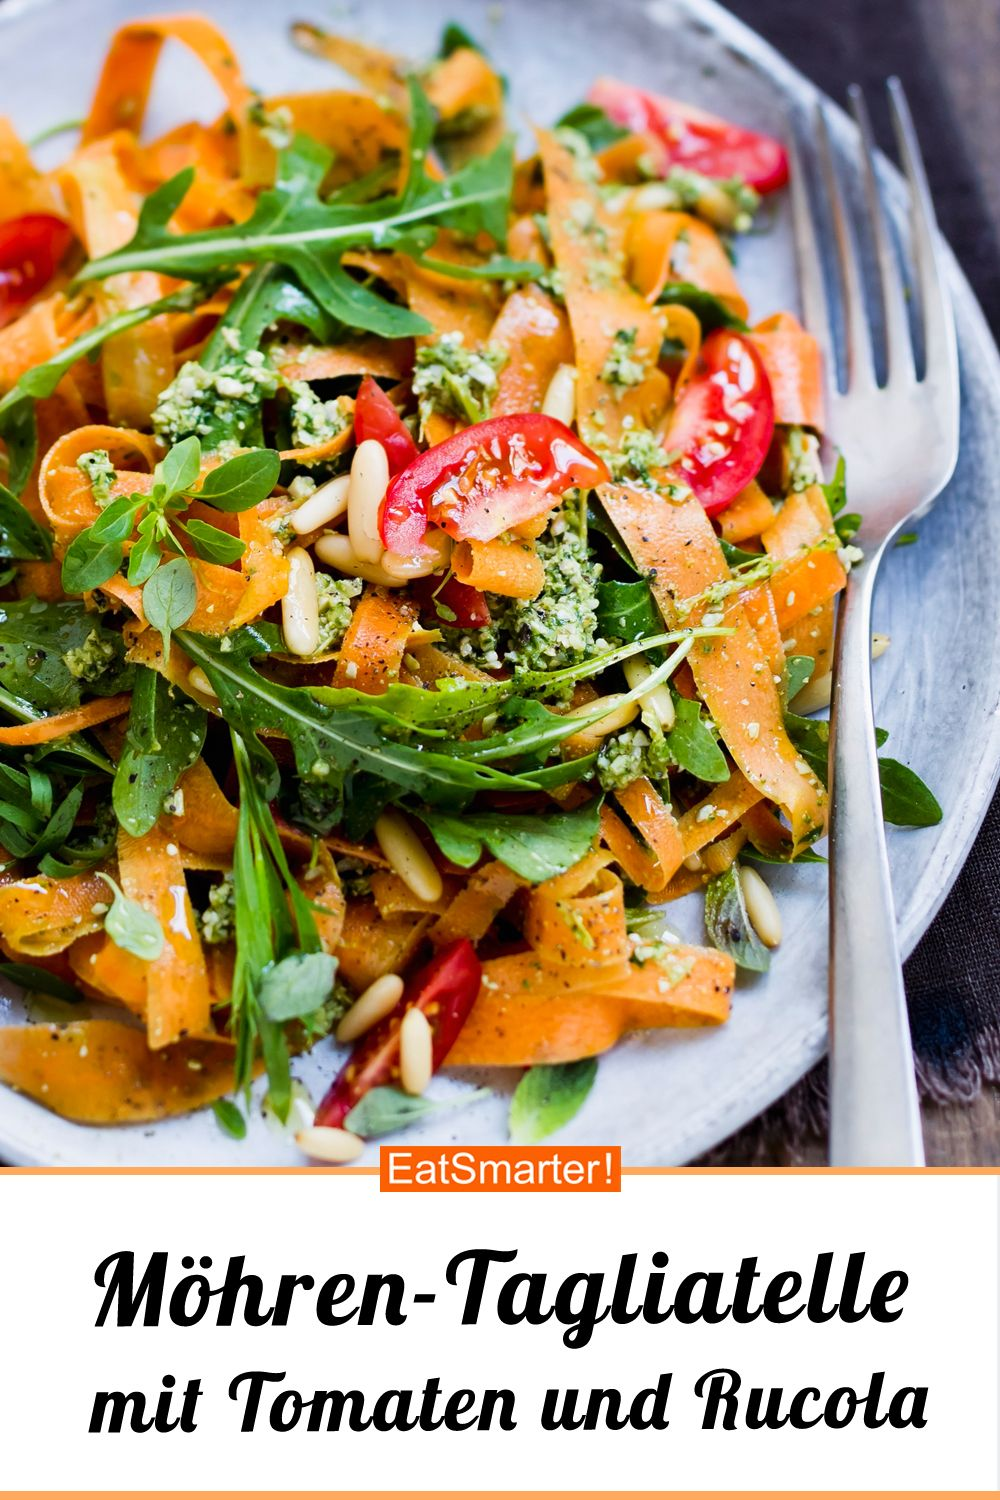 Photo of Carrot tagliatelle with tomatoes and arugula